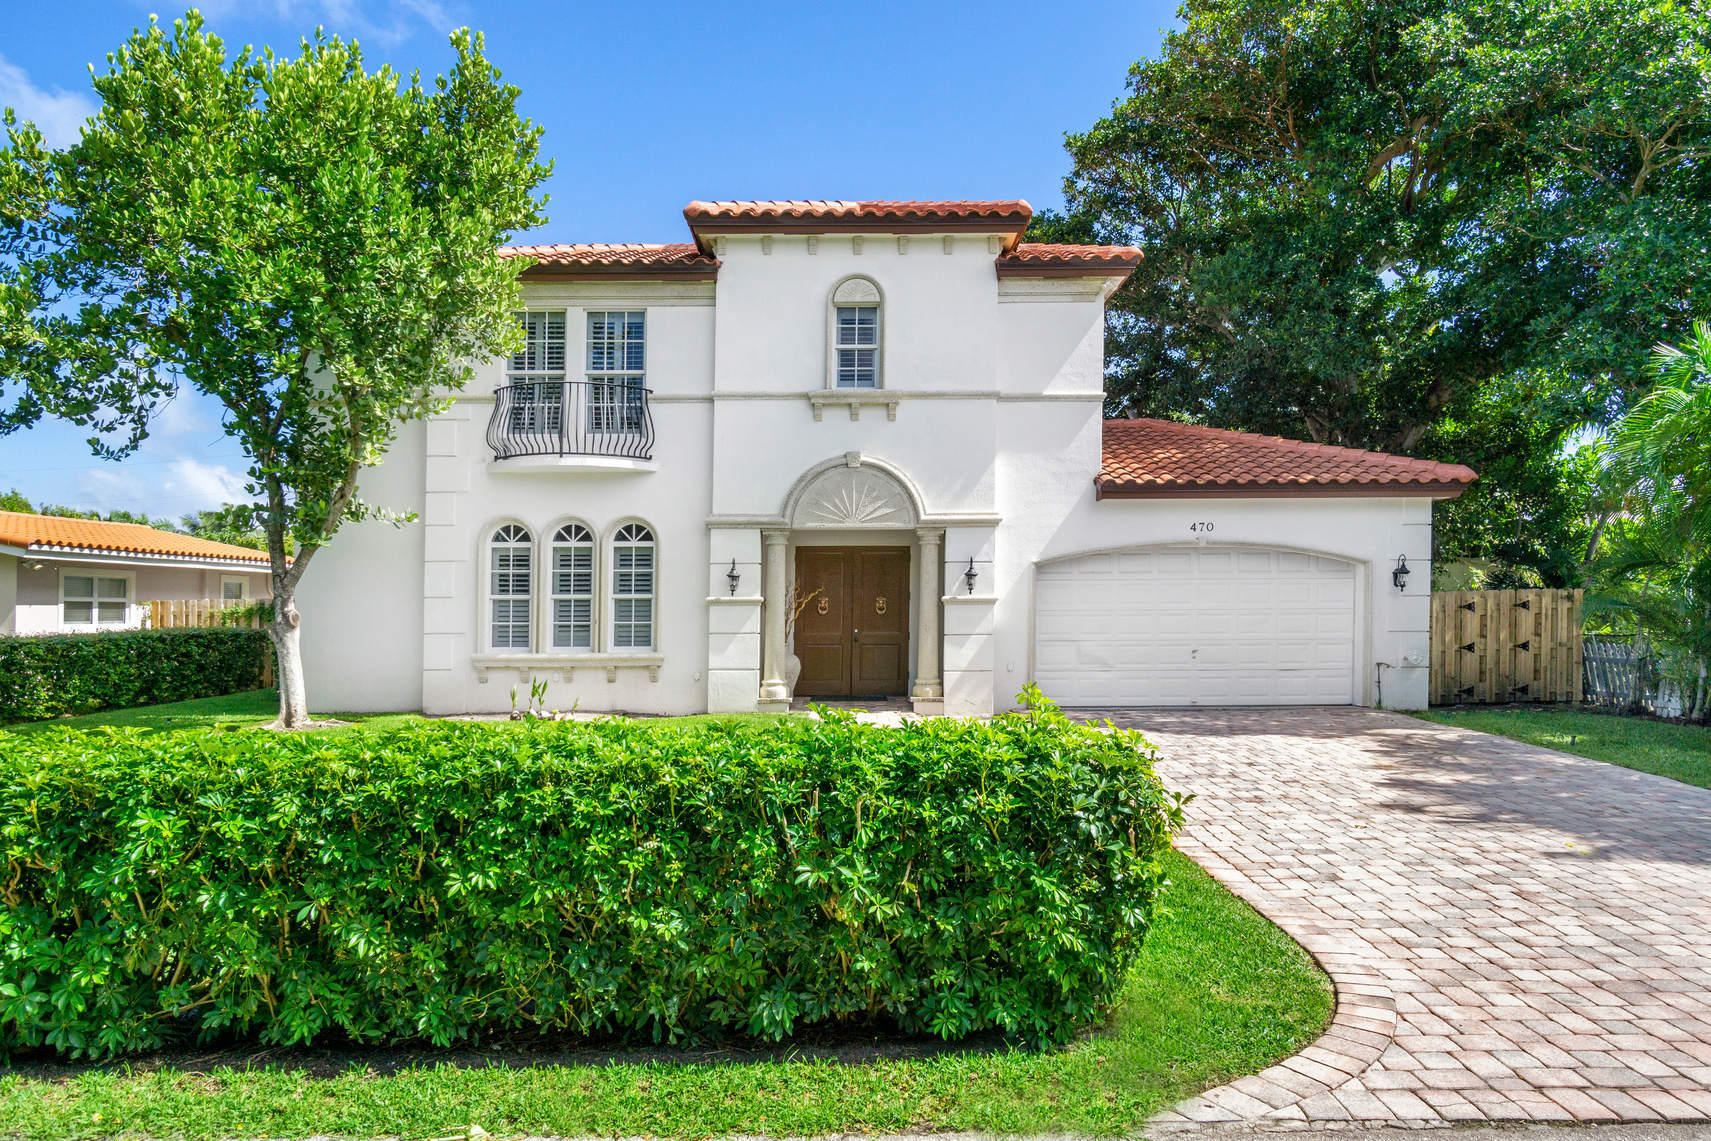 470 Wavecrest Court, Boca Raton, Florida 33432, 5 Bedrooms Bedrooms, ,6 BathroomsBathrooms,A,Single family,Wavecrest,RX-10475195